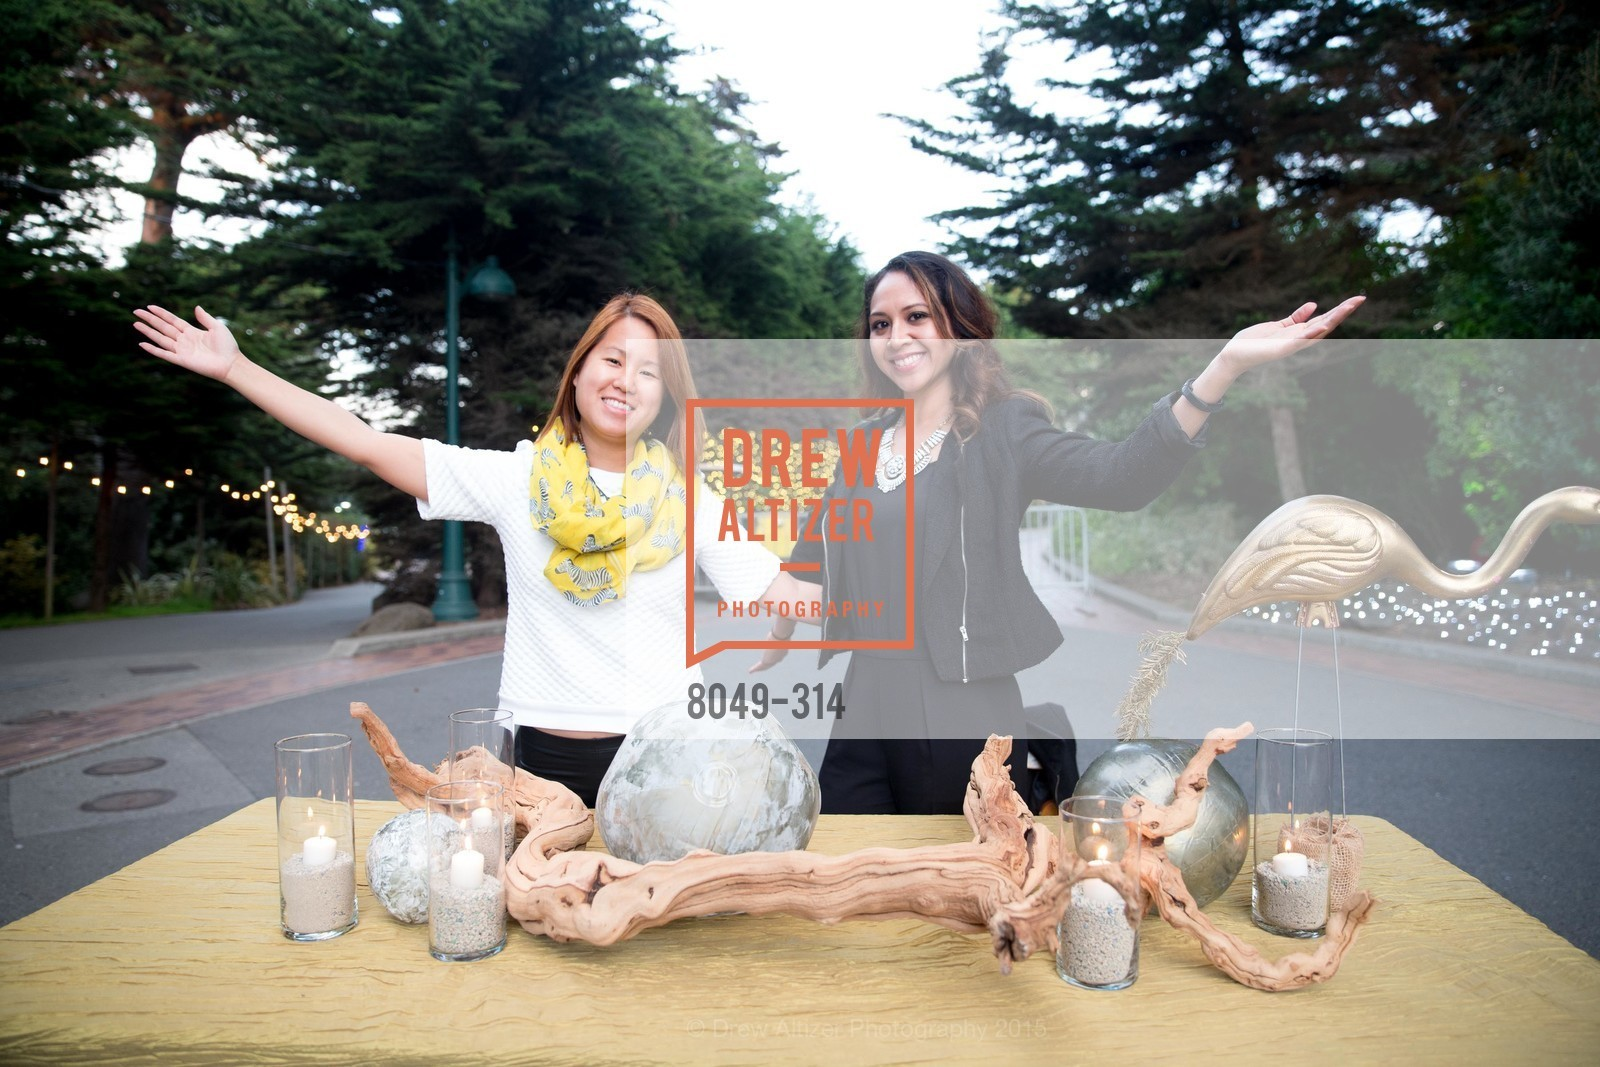 Lana Reyes, Christina Luz, San Francisco Zoo Fur Ball, San Francisco Zoo, September 25th, 2015,Drew Altizer, Drew Altizer Photography, full-service agency, private events, San Francisco photographer, photographer california